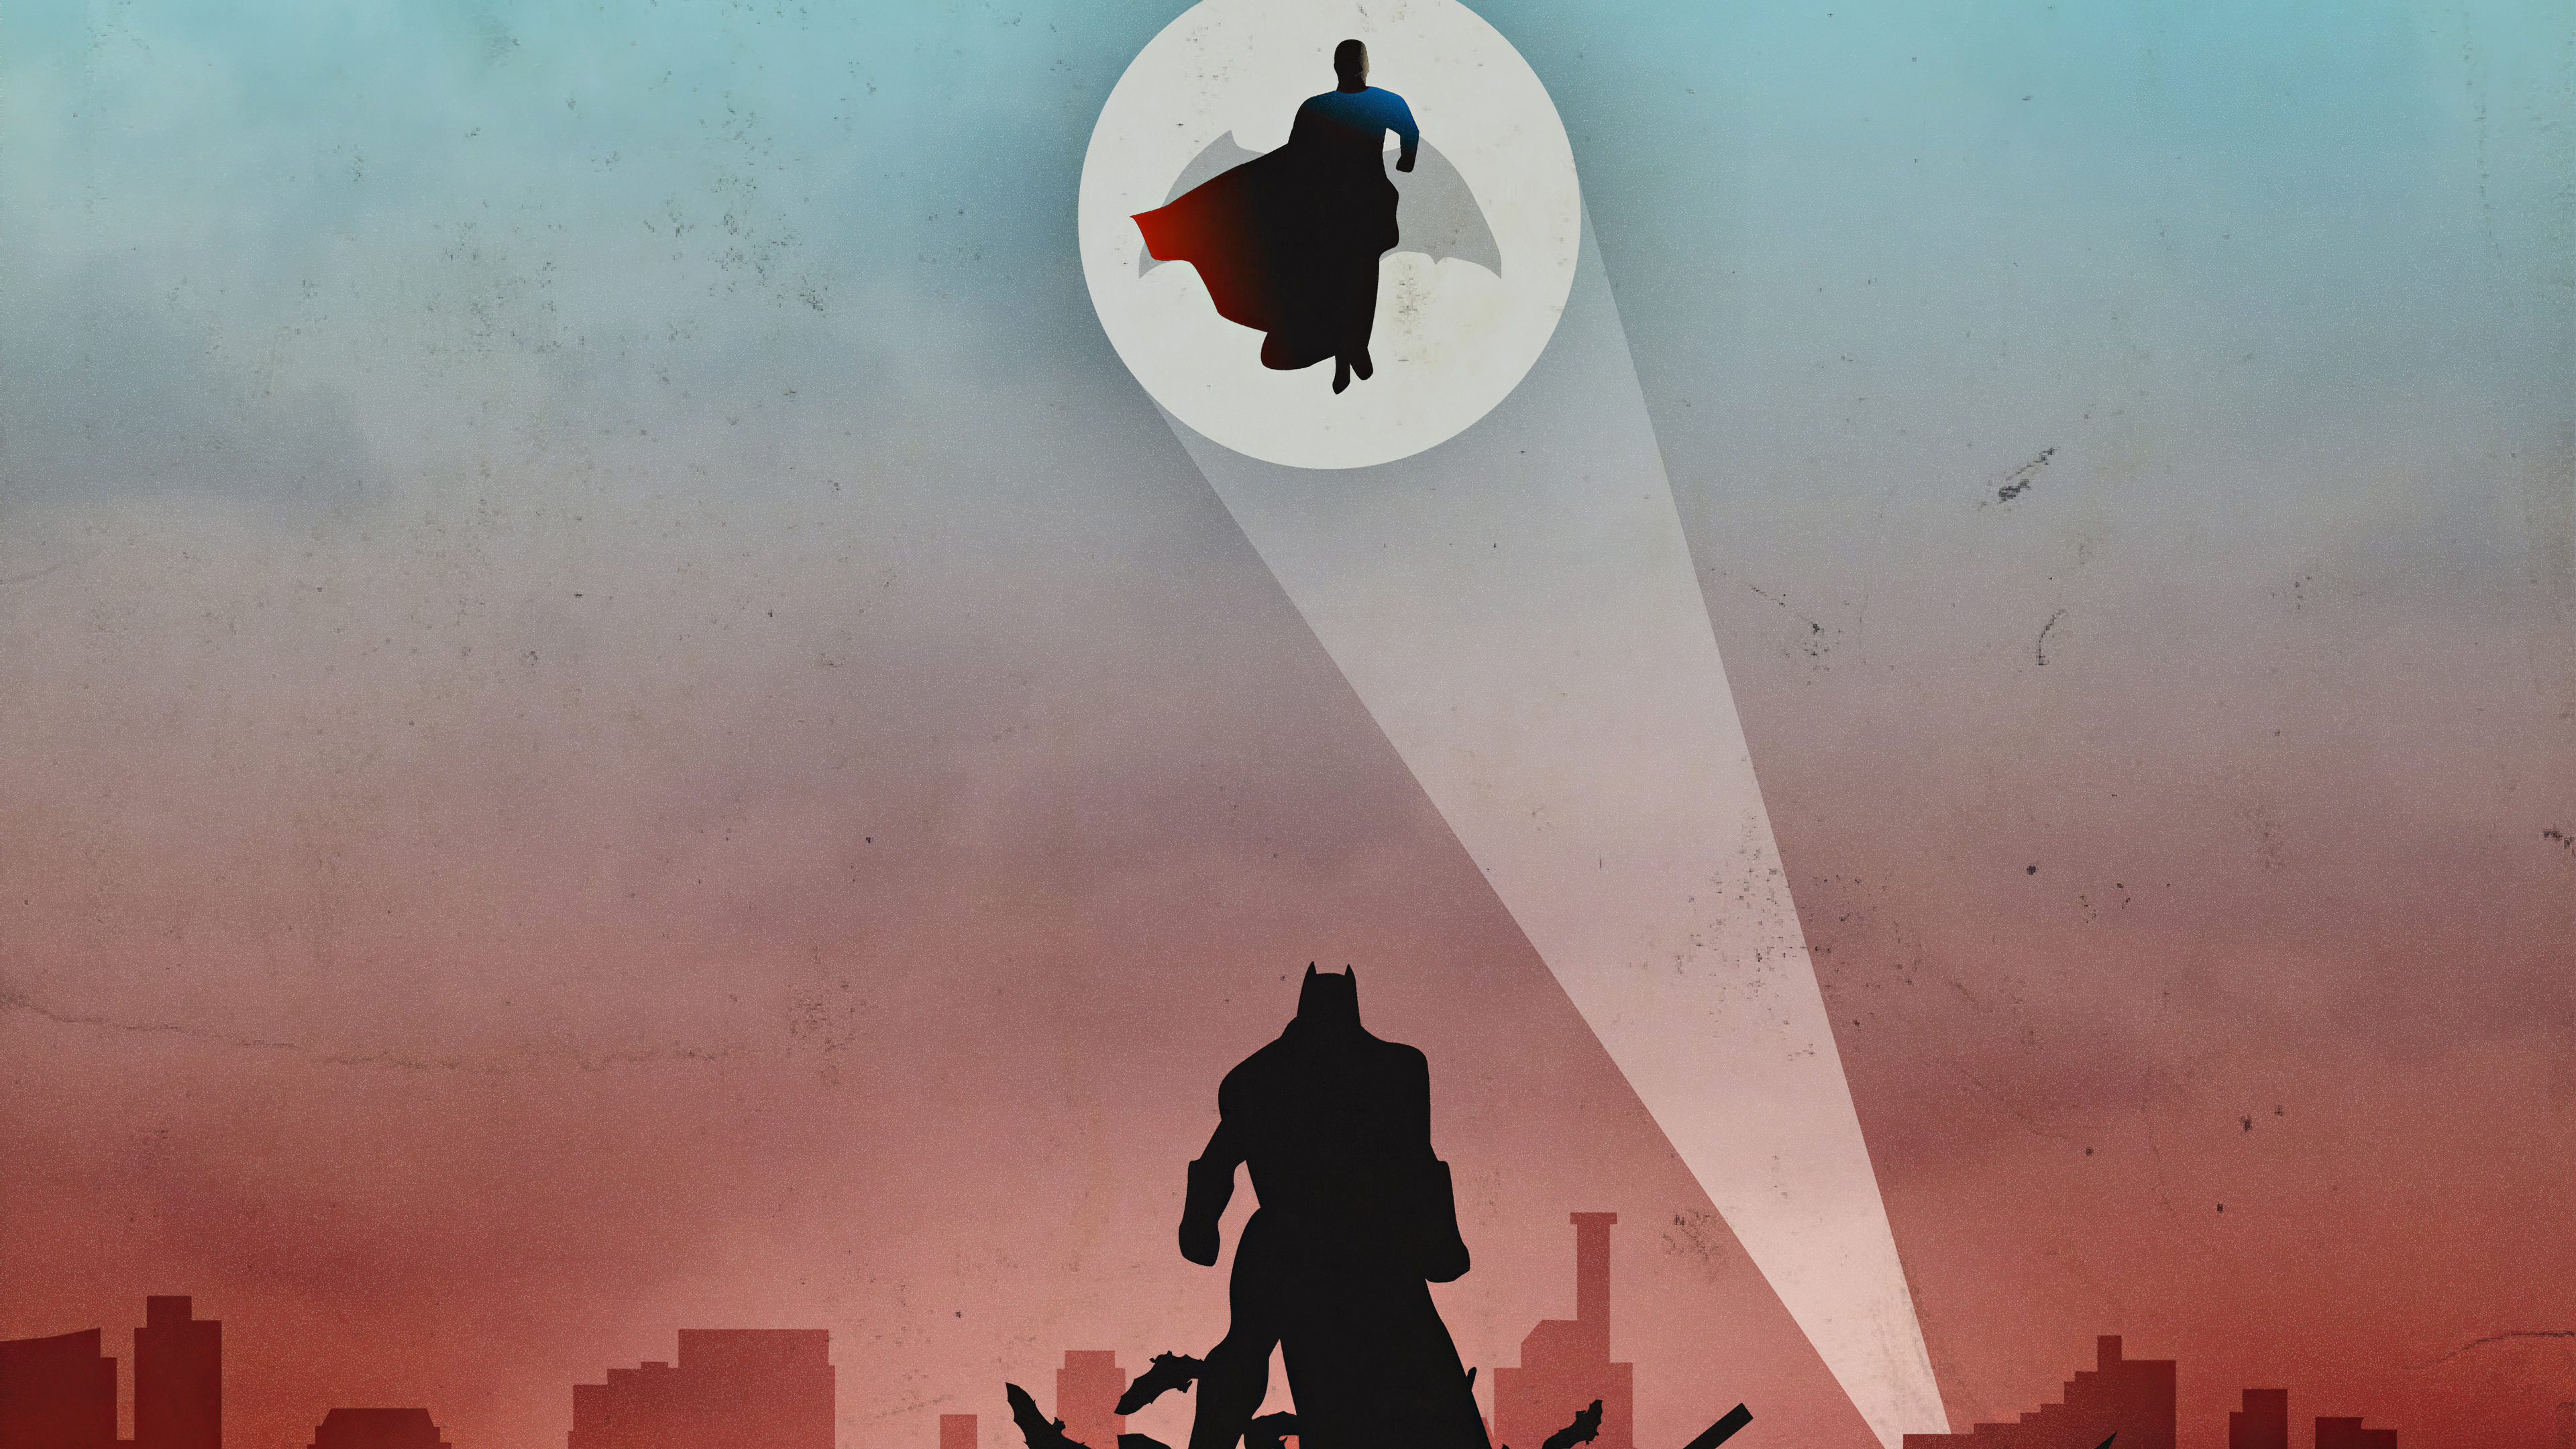 Wallpaper Batman Superman look up